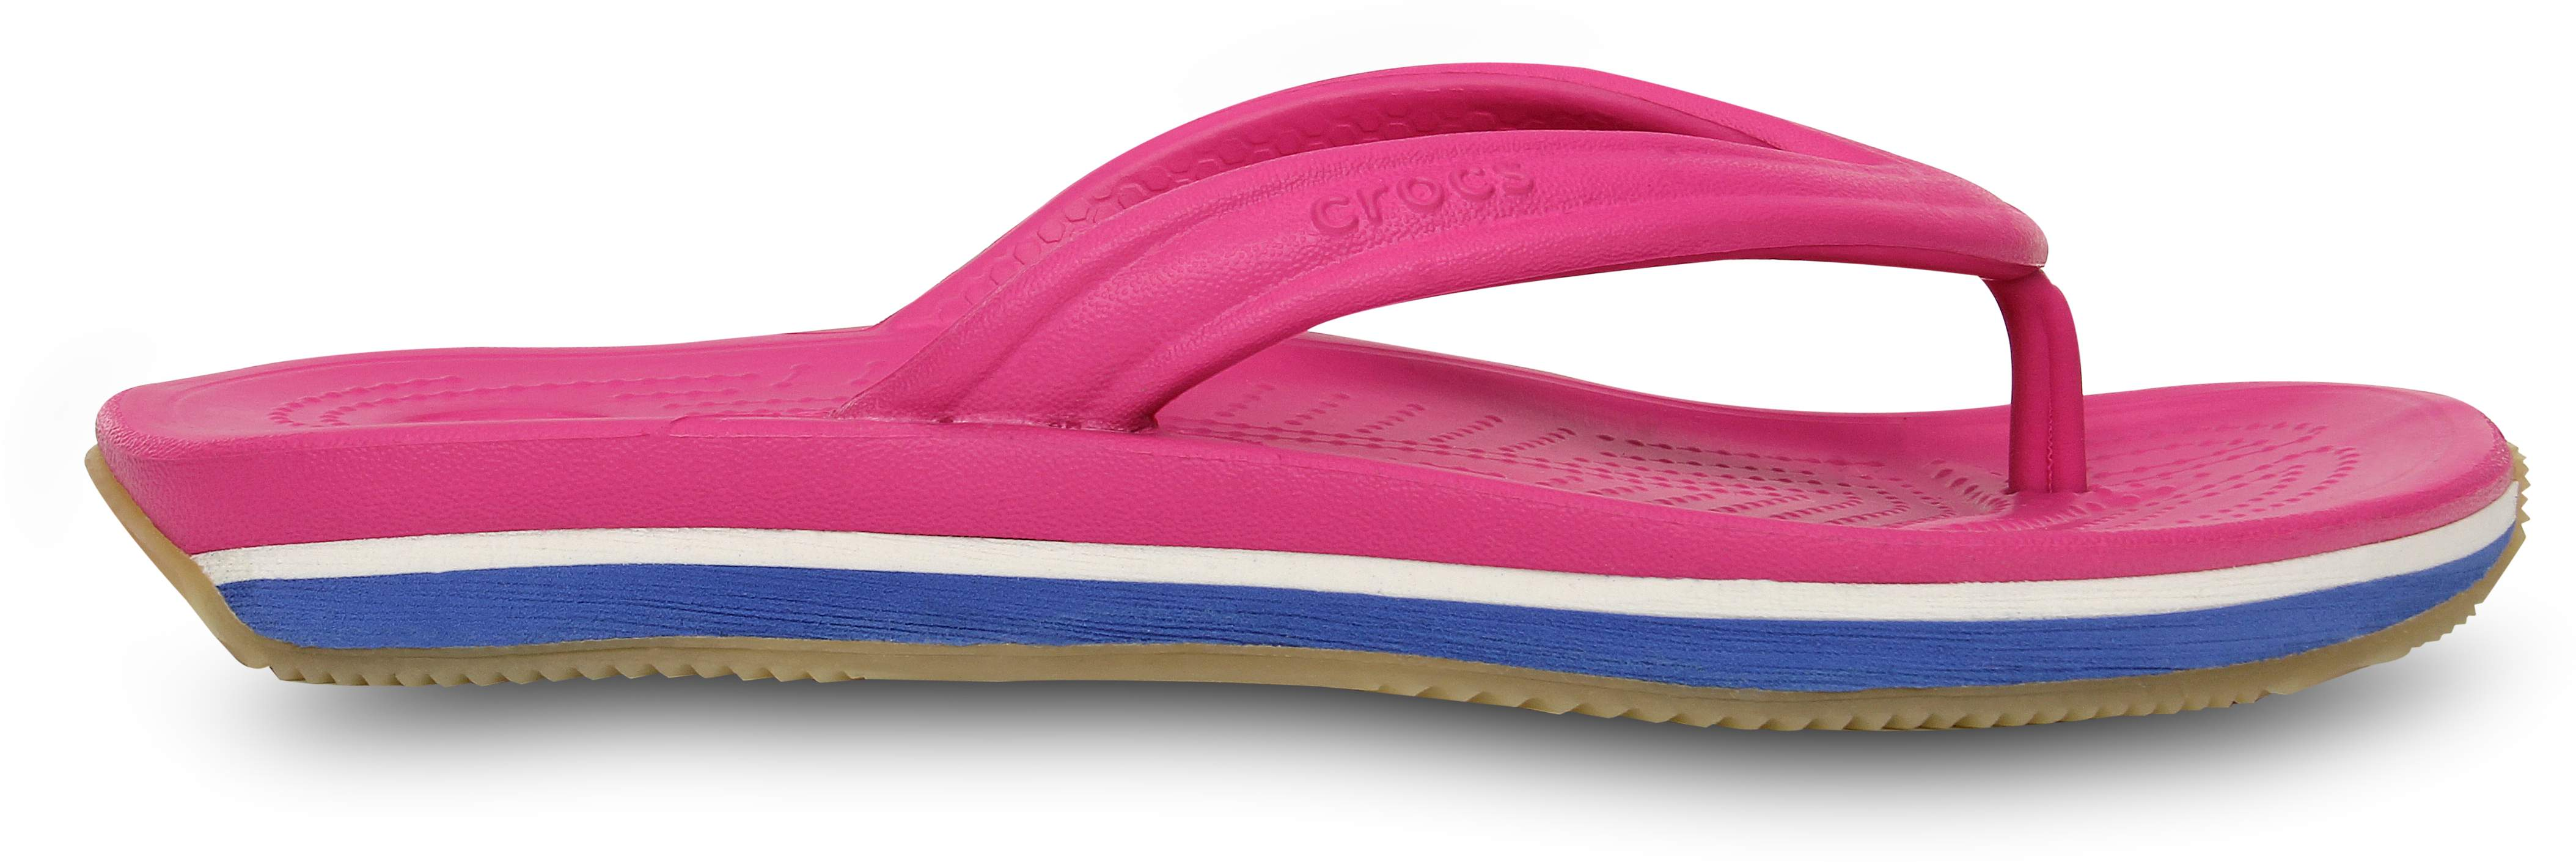 Kids'<br /> Crocs Retro Flip